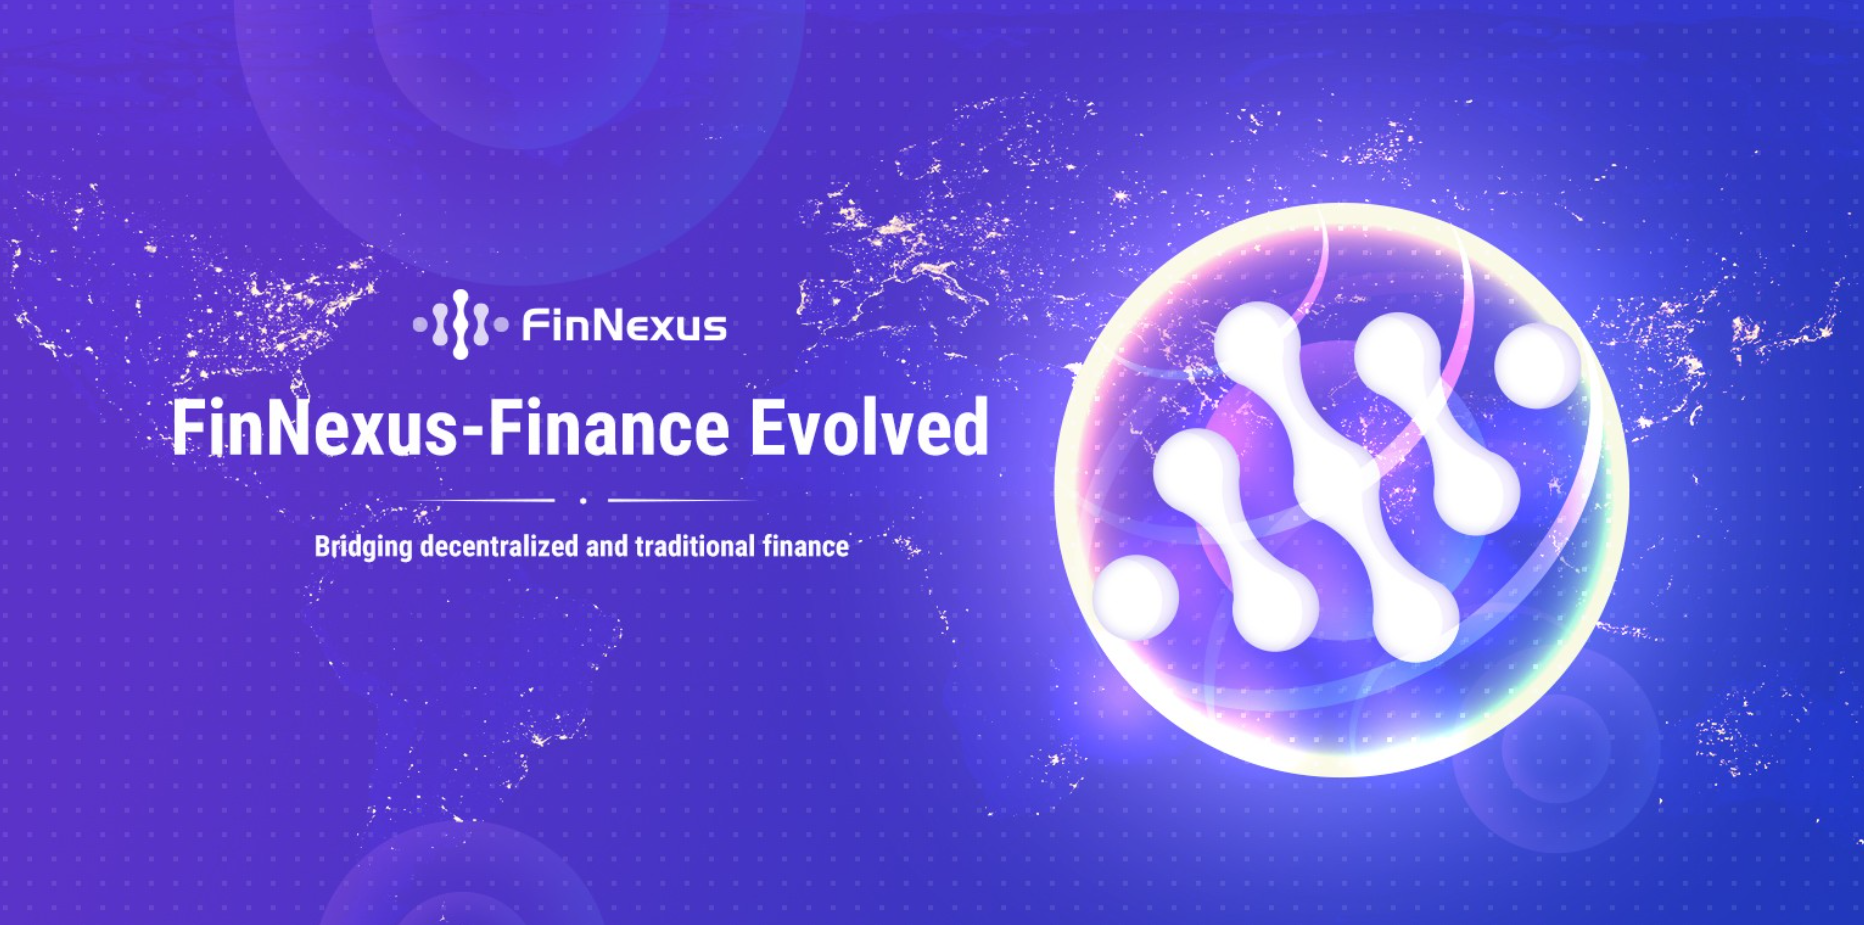 FinNexus Launches Decentralized Options Trading Competition With 60,000 FNX in Prizes